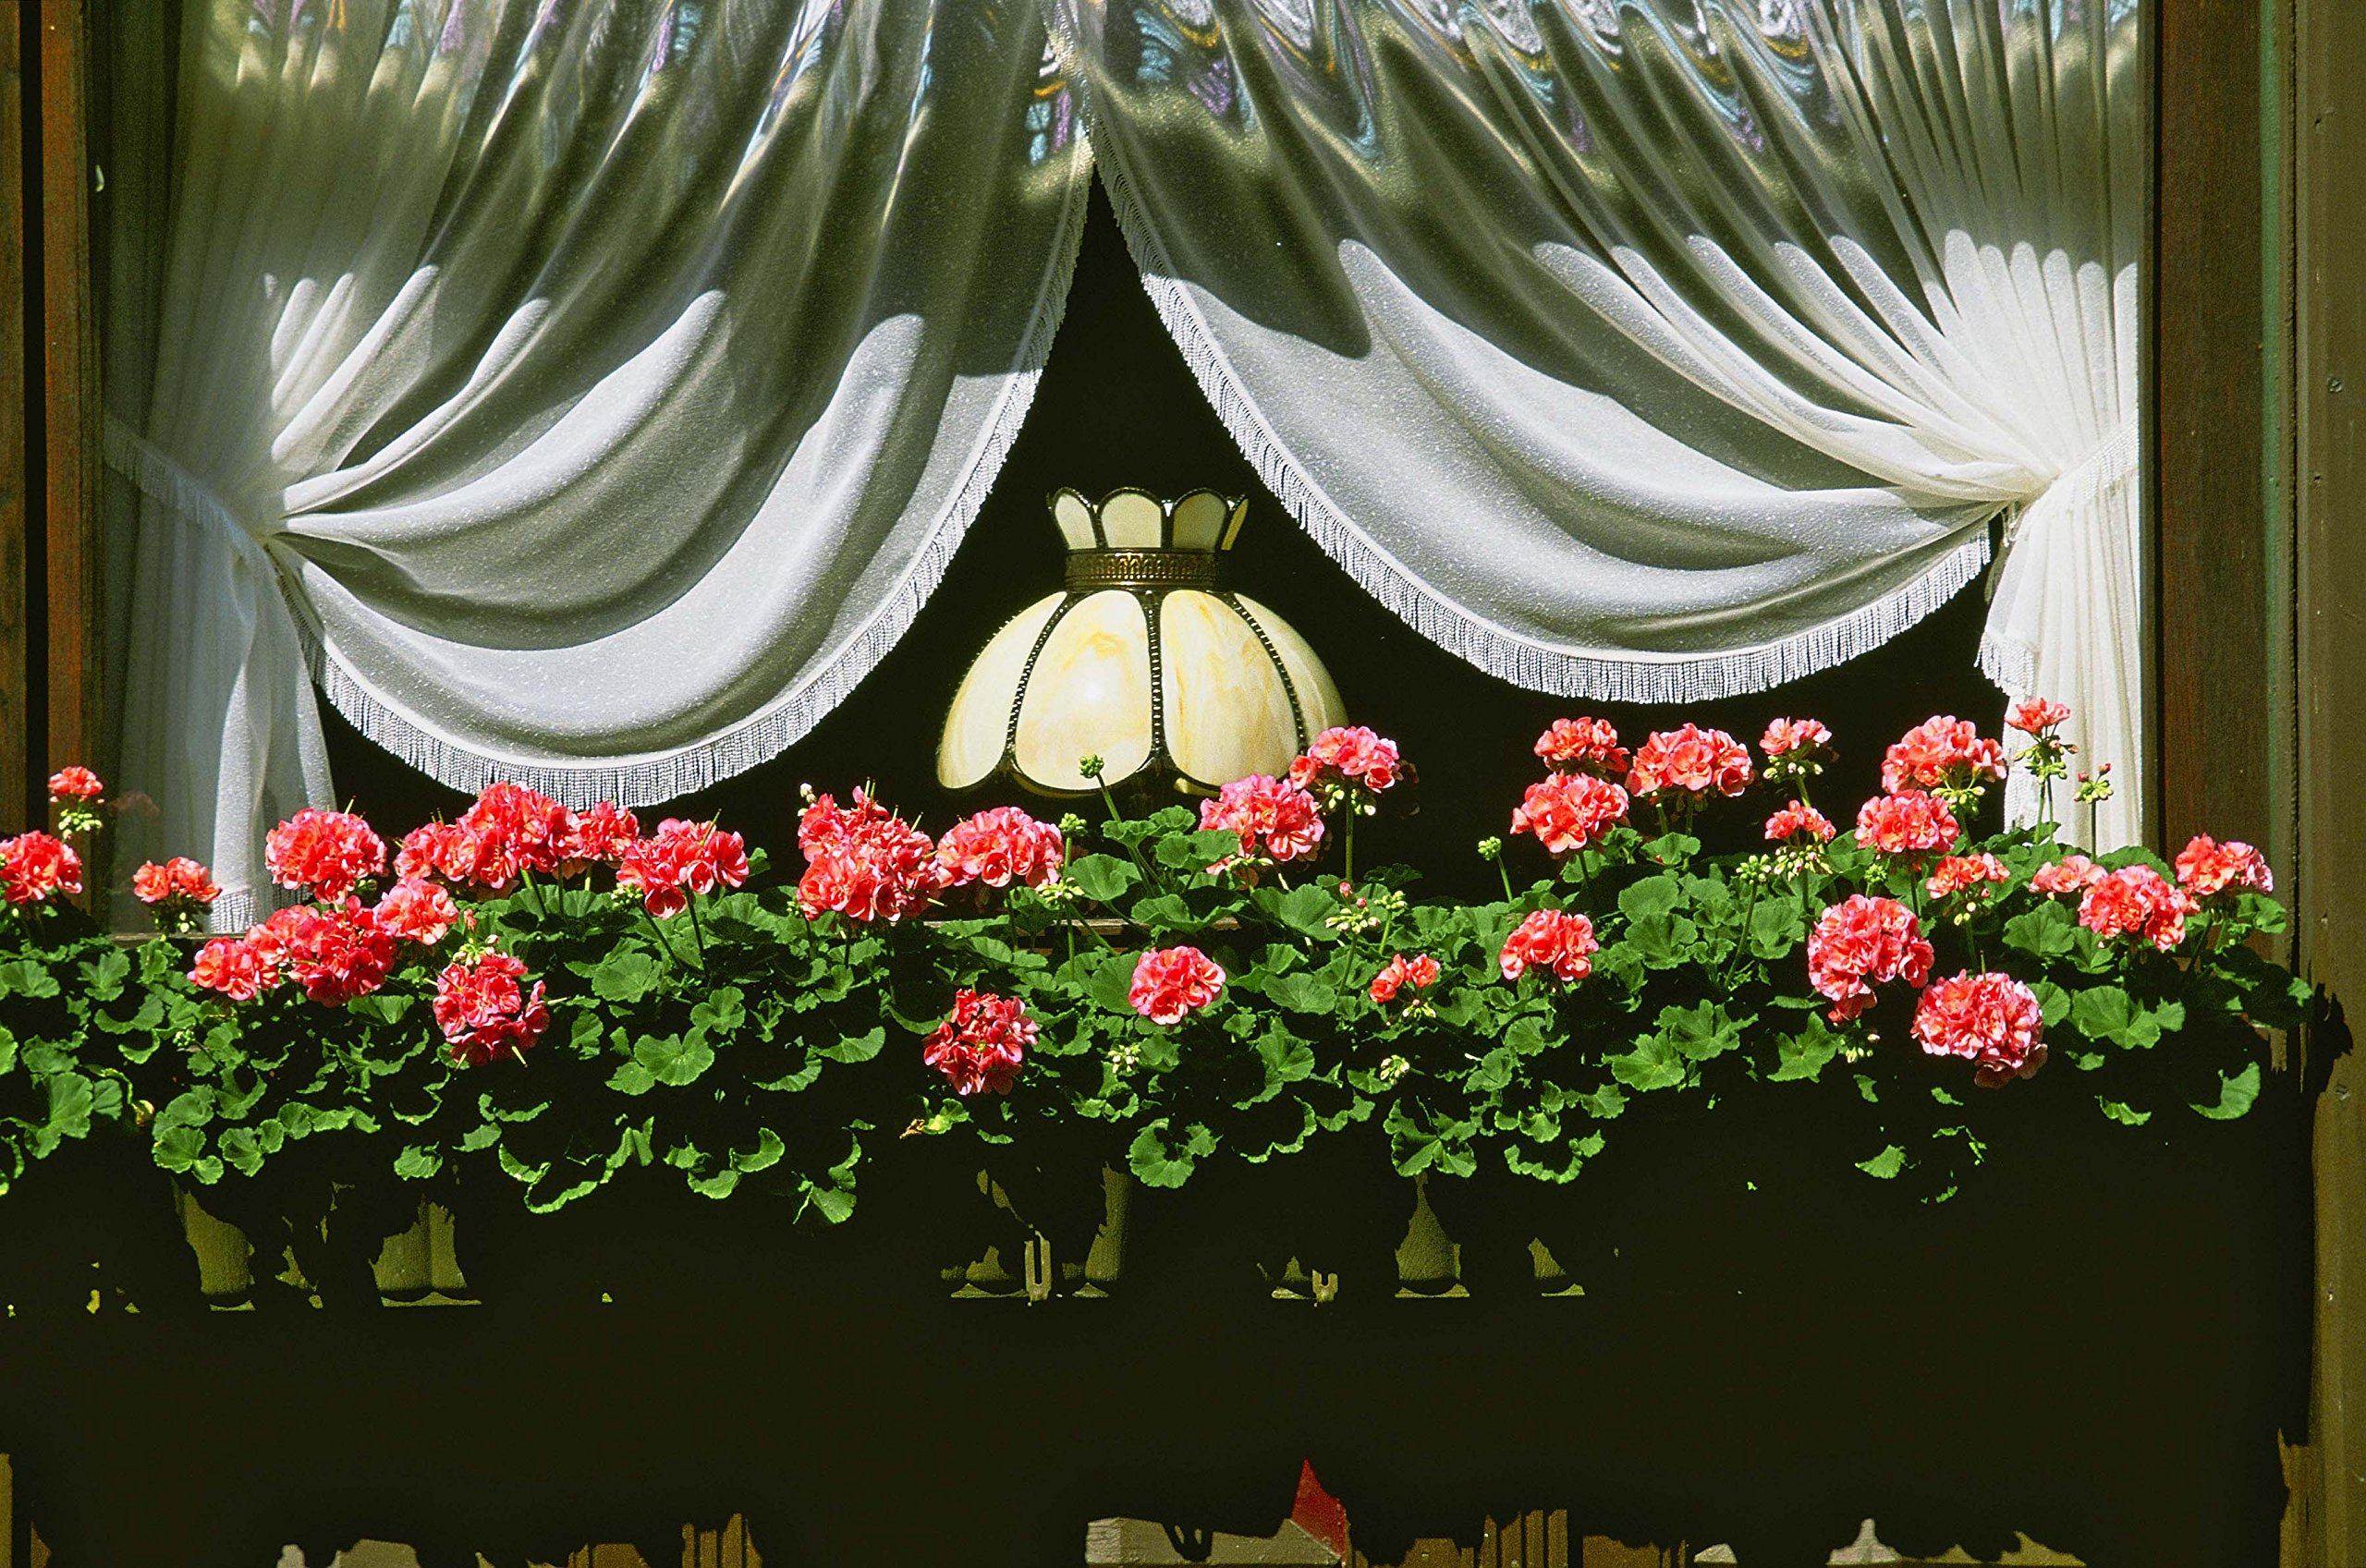 "Window Box with Pink Geraniums, Amsterdam, Netherlands, Europe Holland landscape photo nature photography wall art home office decor sizes up to 17x25"" fine art print signed by the artist."